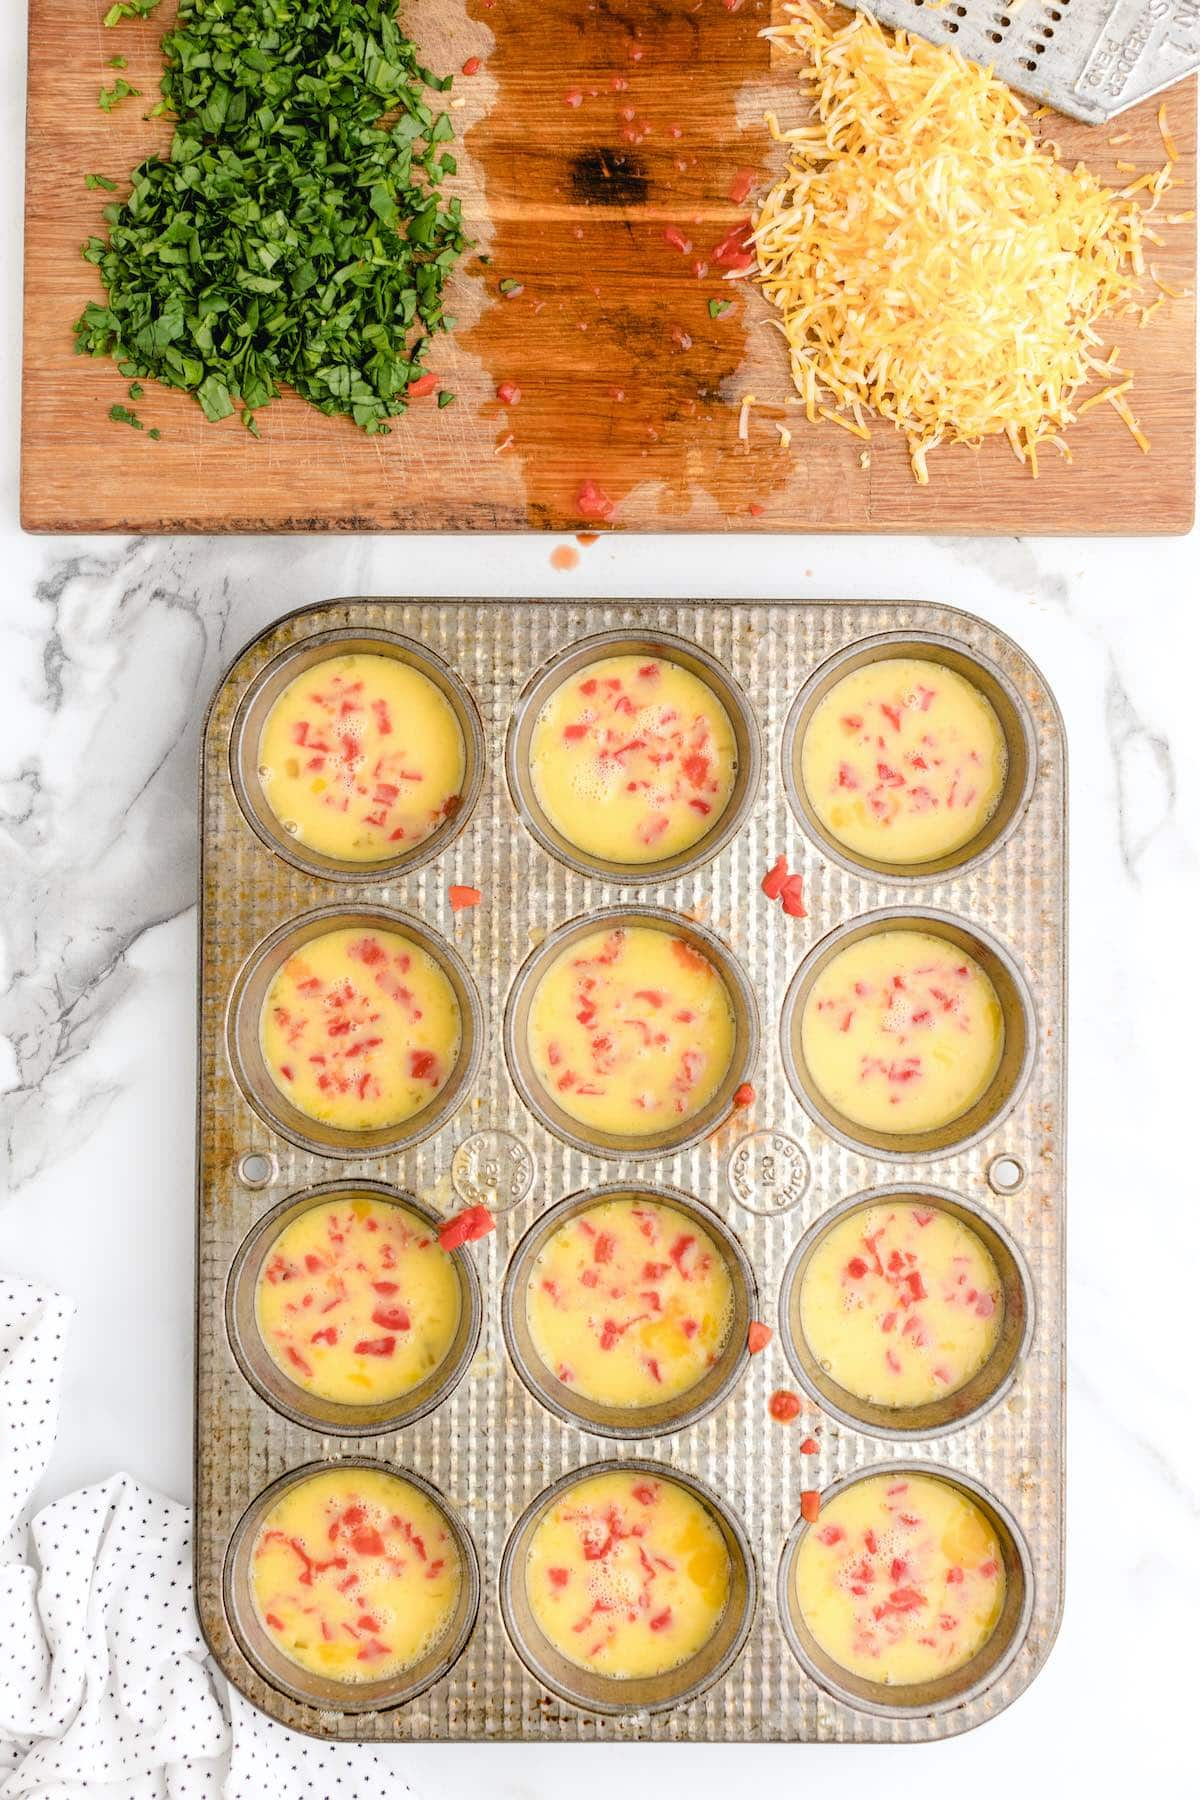 add red peppers into each muffin spots